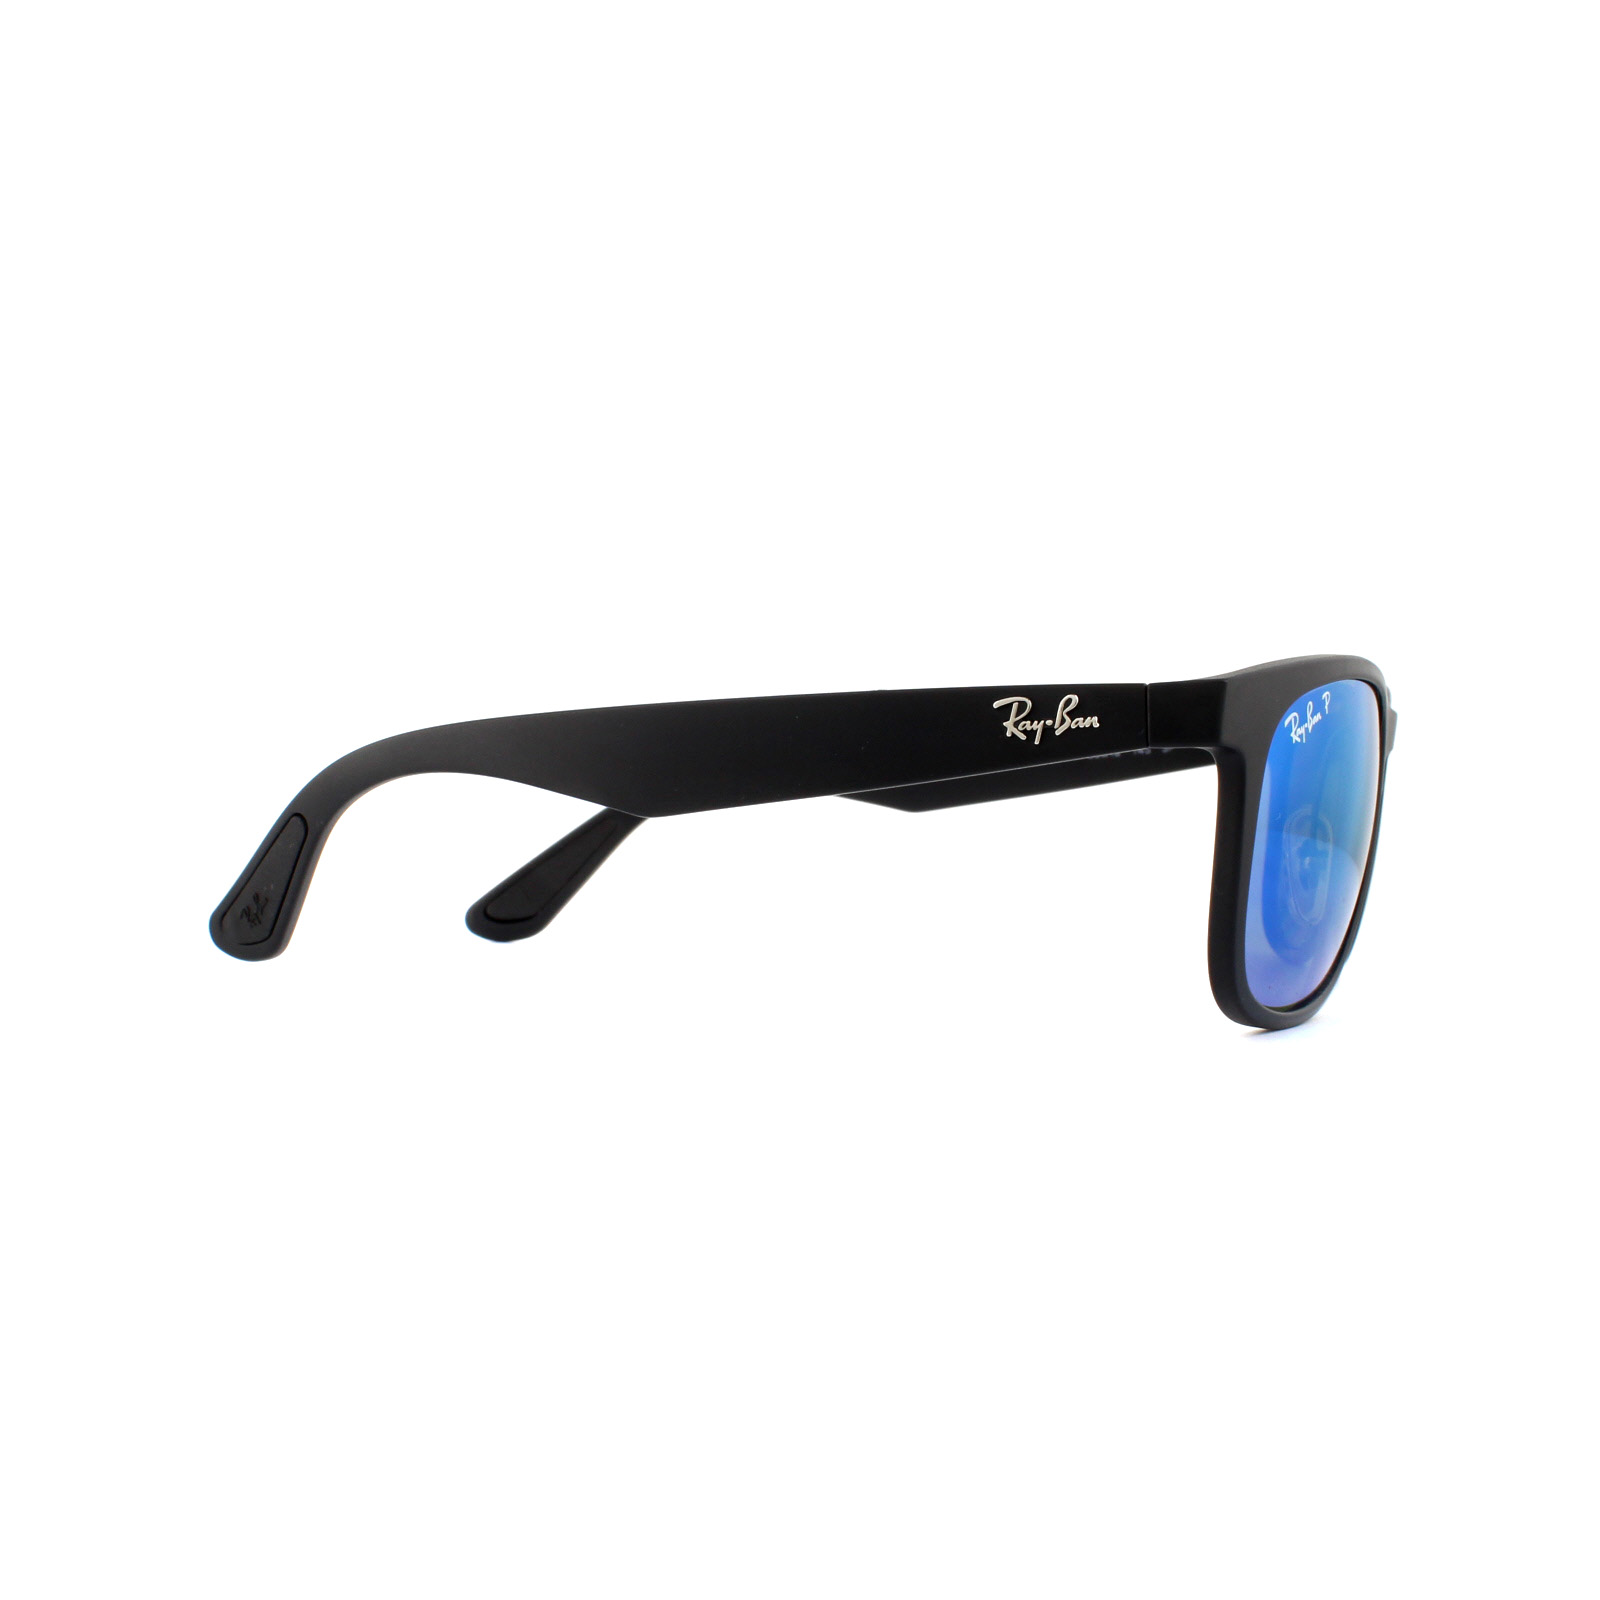 81b854f923 Sentinel Ray-Ban Sunglasses RB4263 601SA1 Matte Black Blue Mirror Polarized  Chromance. Sentinel Thumbnail 5